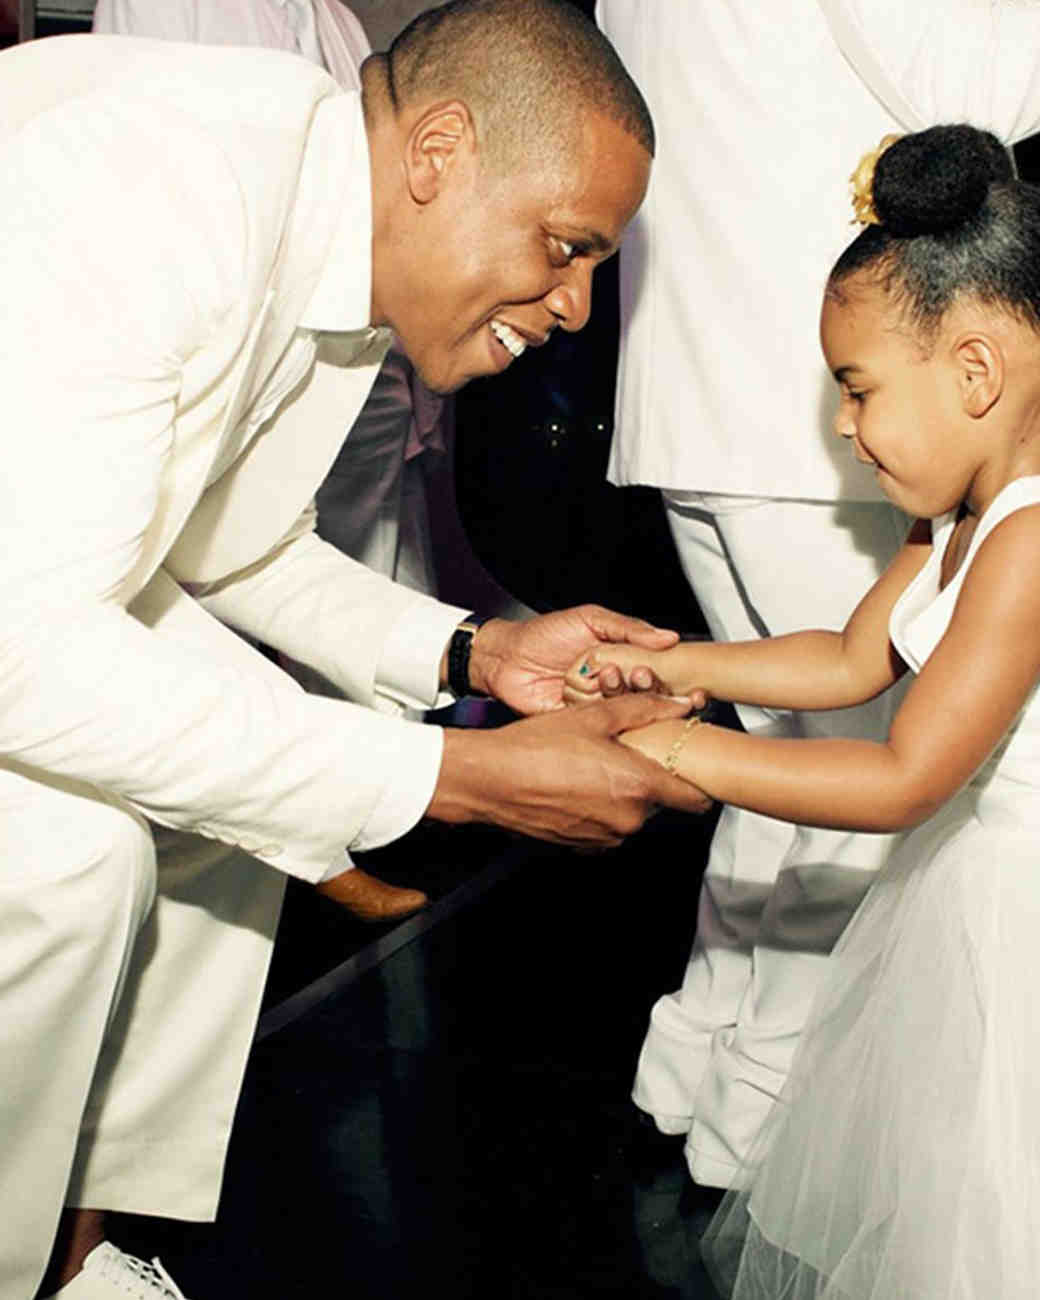 blue-ivy-carter-jay-z-celebrity-kids-weddings-0716.jpg